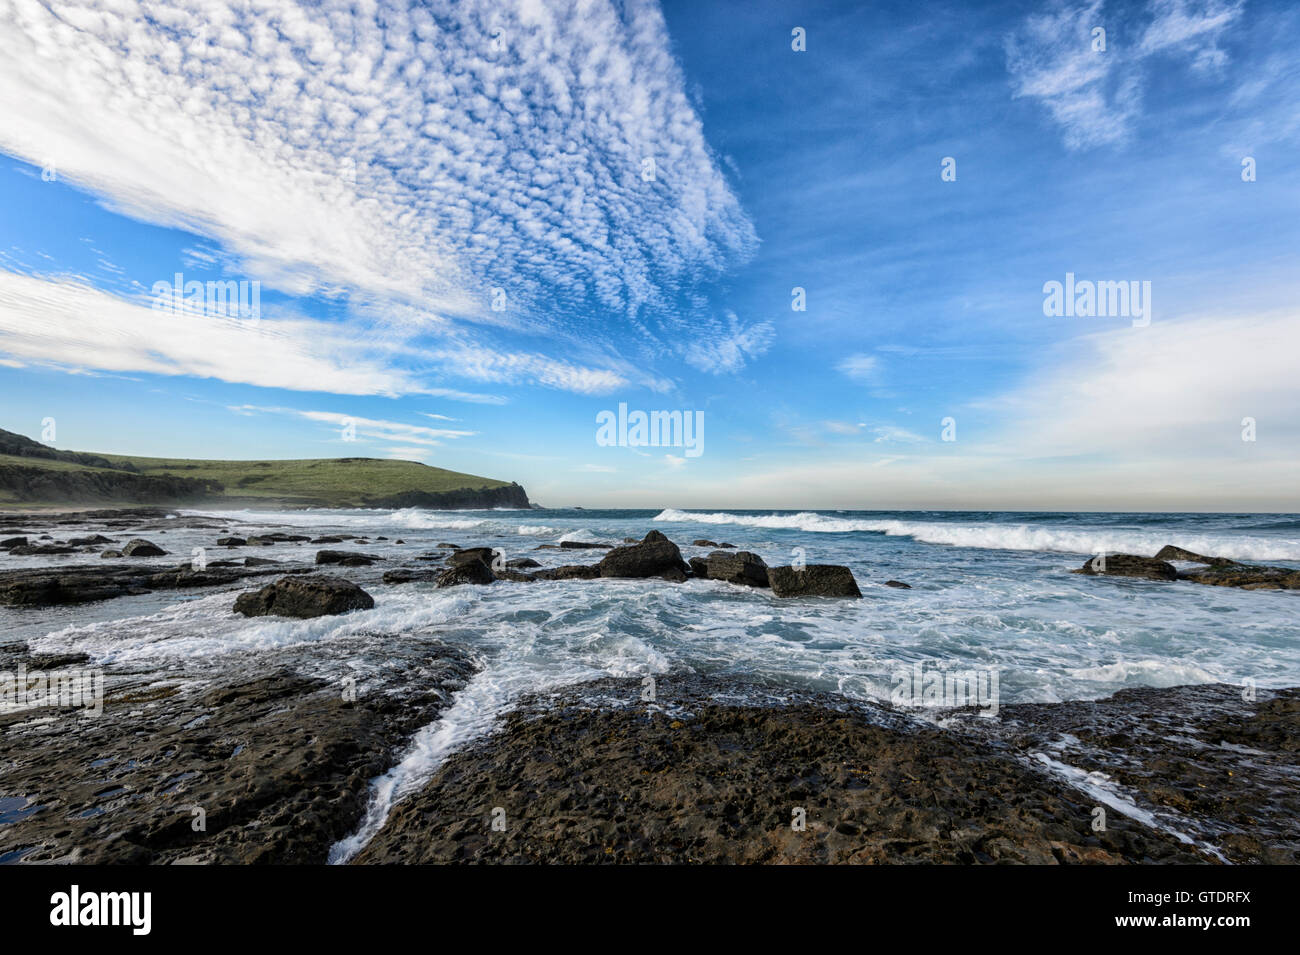 View of the South Coast at Gerroa Headland, New South Wales, NSW, Australia - Stock Image